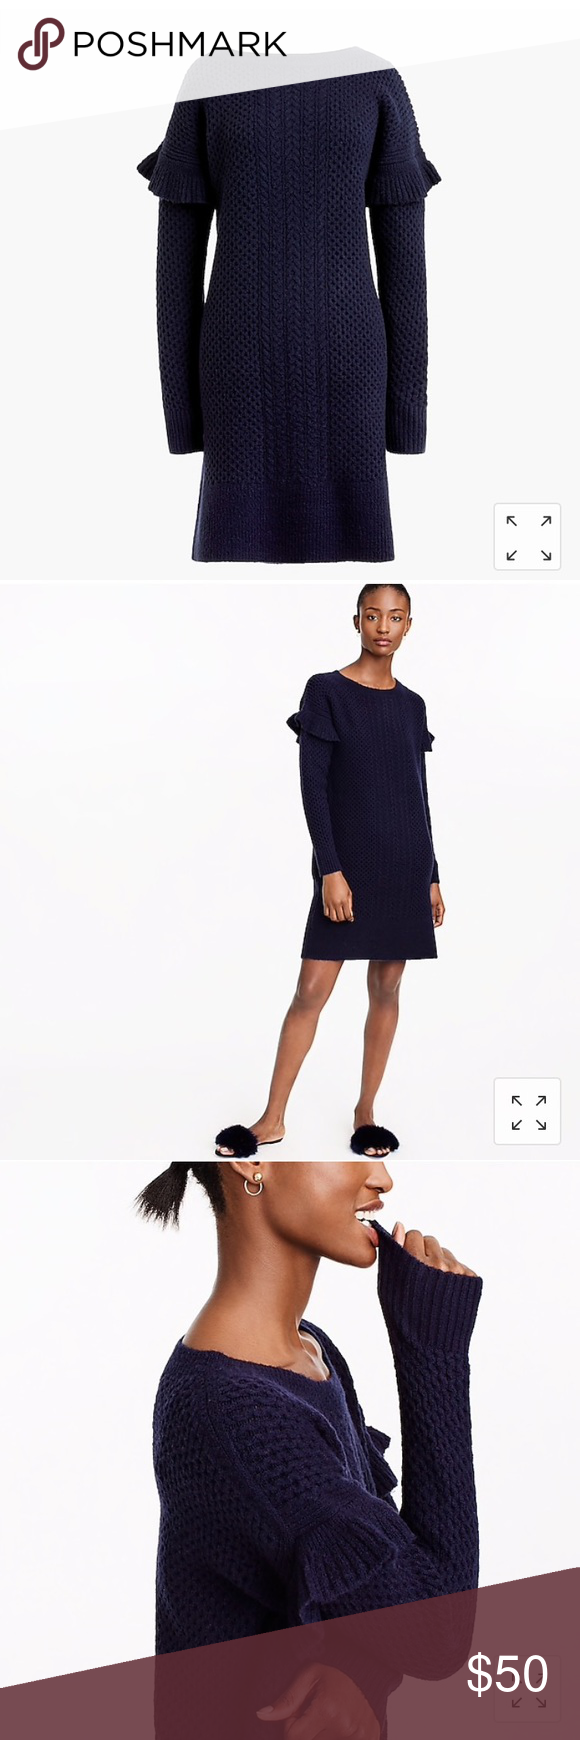 5a74150eacc NWT J. Crew cable knit ruffle sleeve sweater dress NWT J. Crew cable knit  ruffle long sleeve sweater dress! Beautiful navy color. Soft and warm!